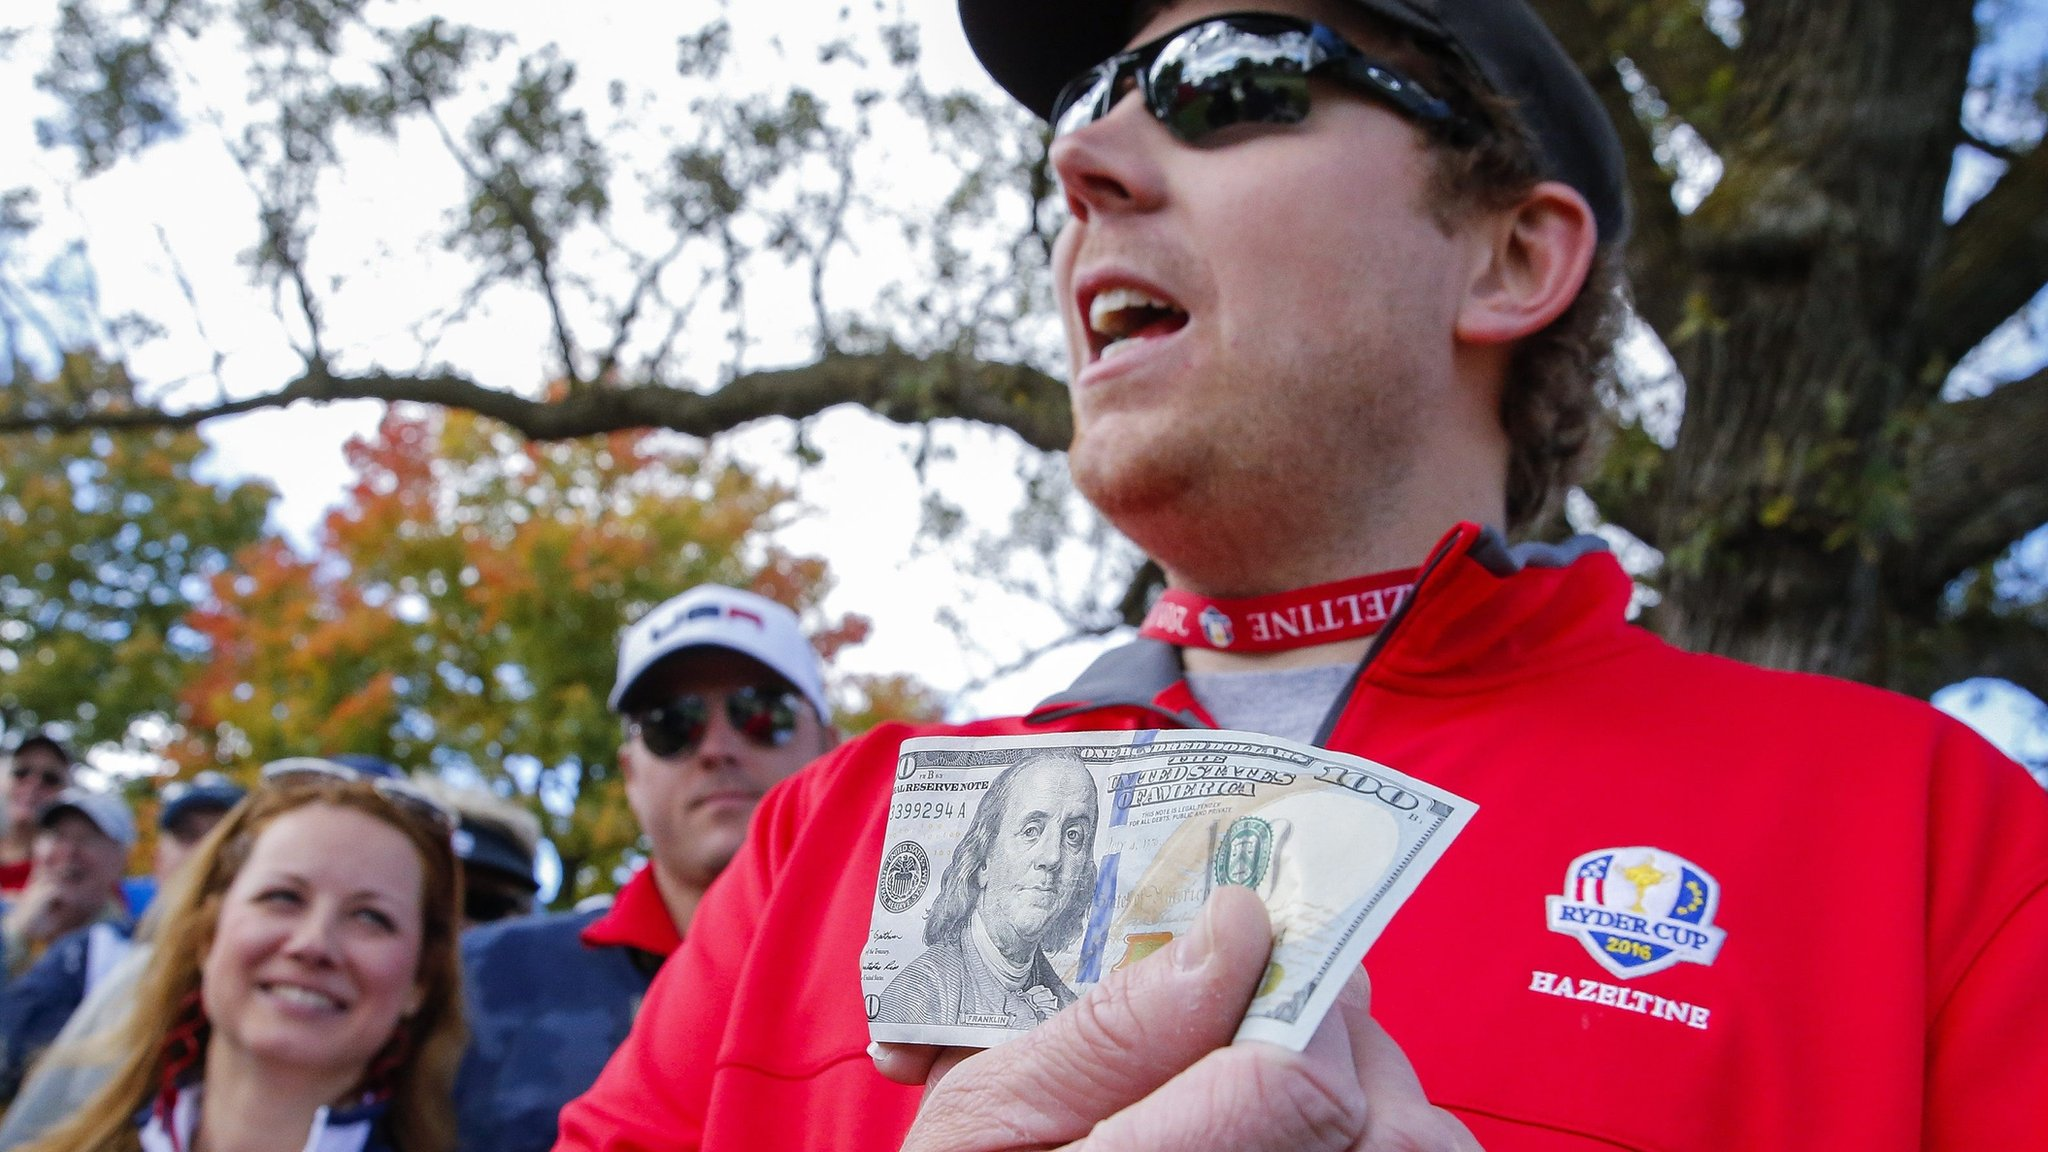 Putt on the spot: American heckler wins $100 bet with Europe's Rose